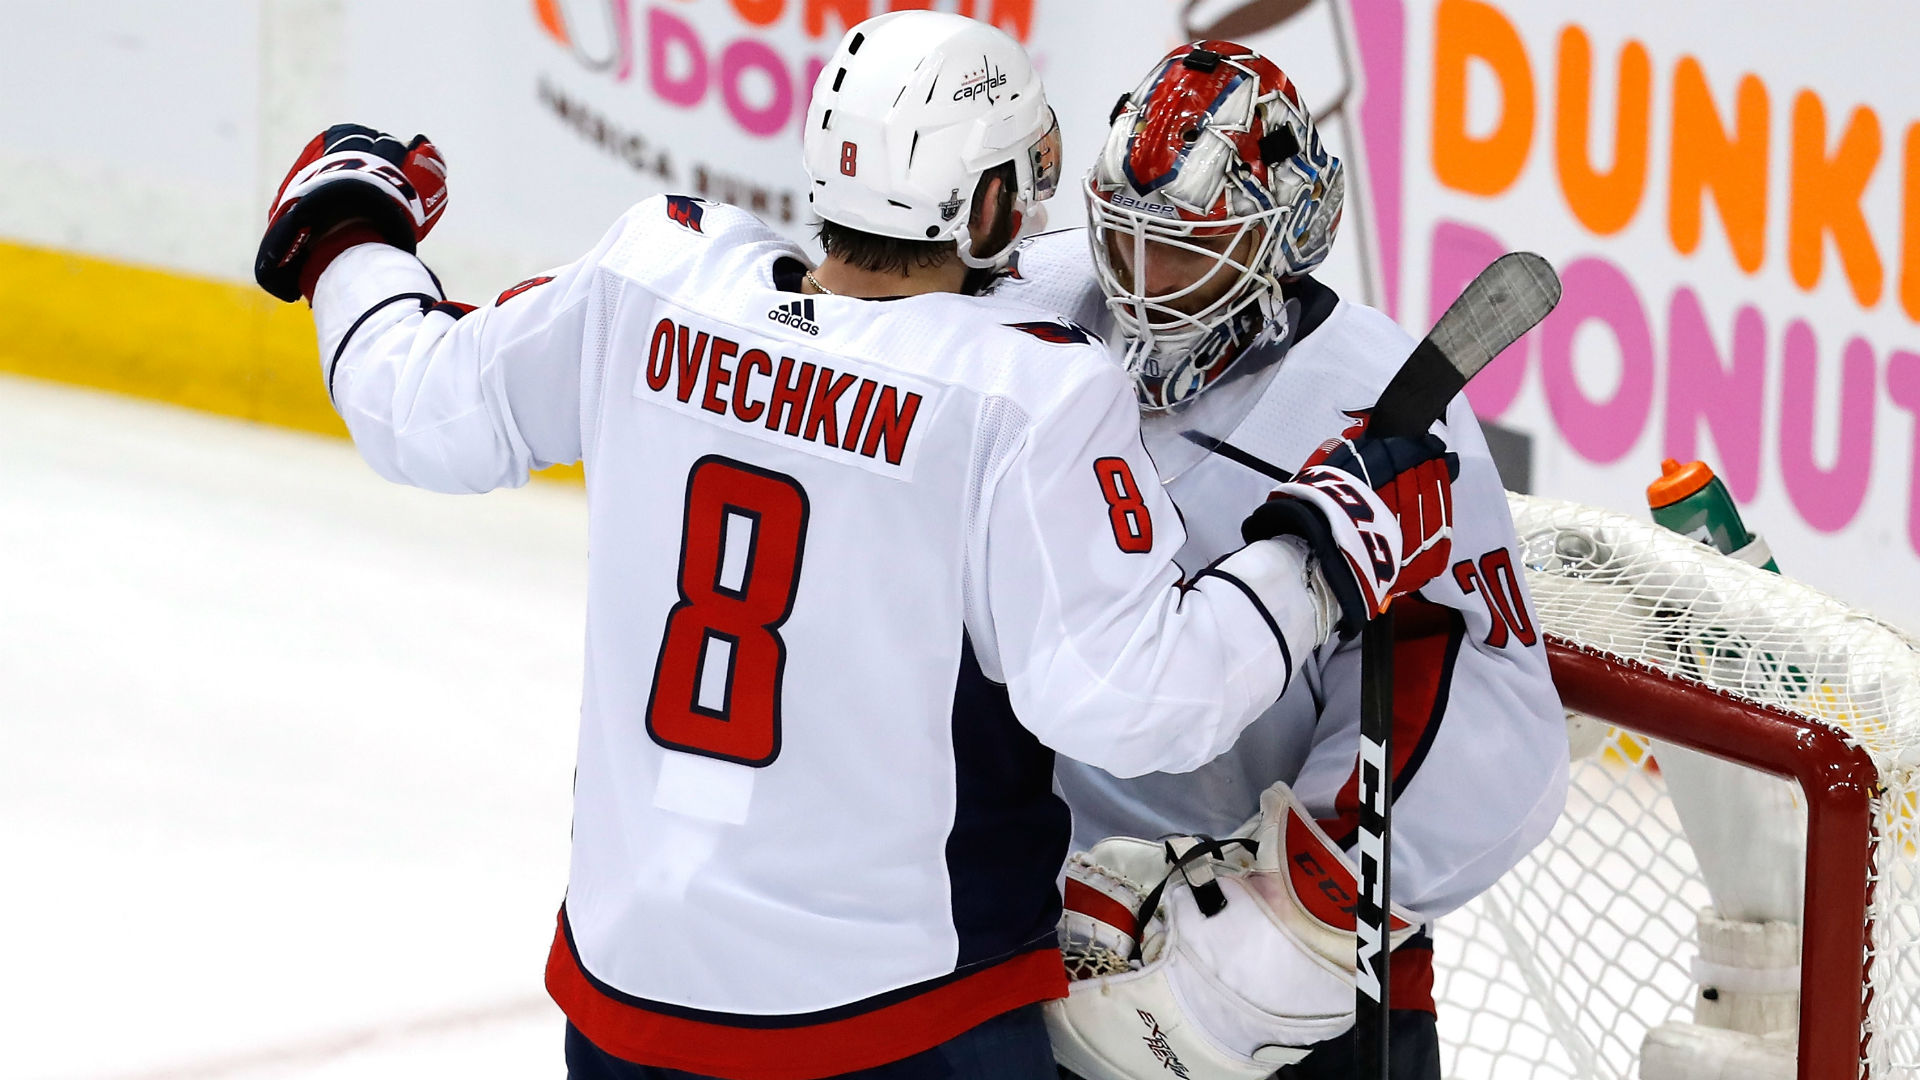 Ovechkin-Holtby-FTR-Capitals-061118-Getty